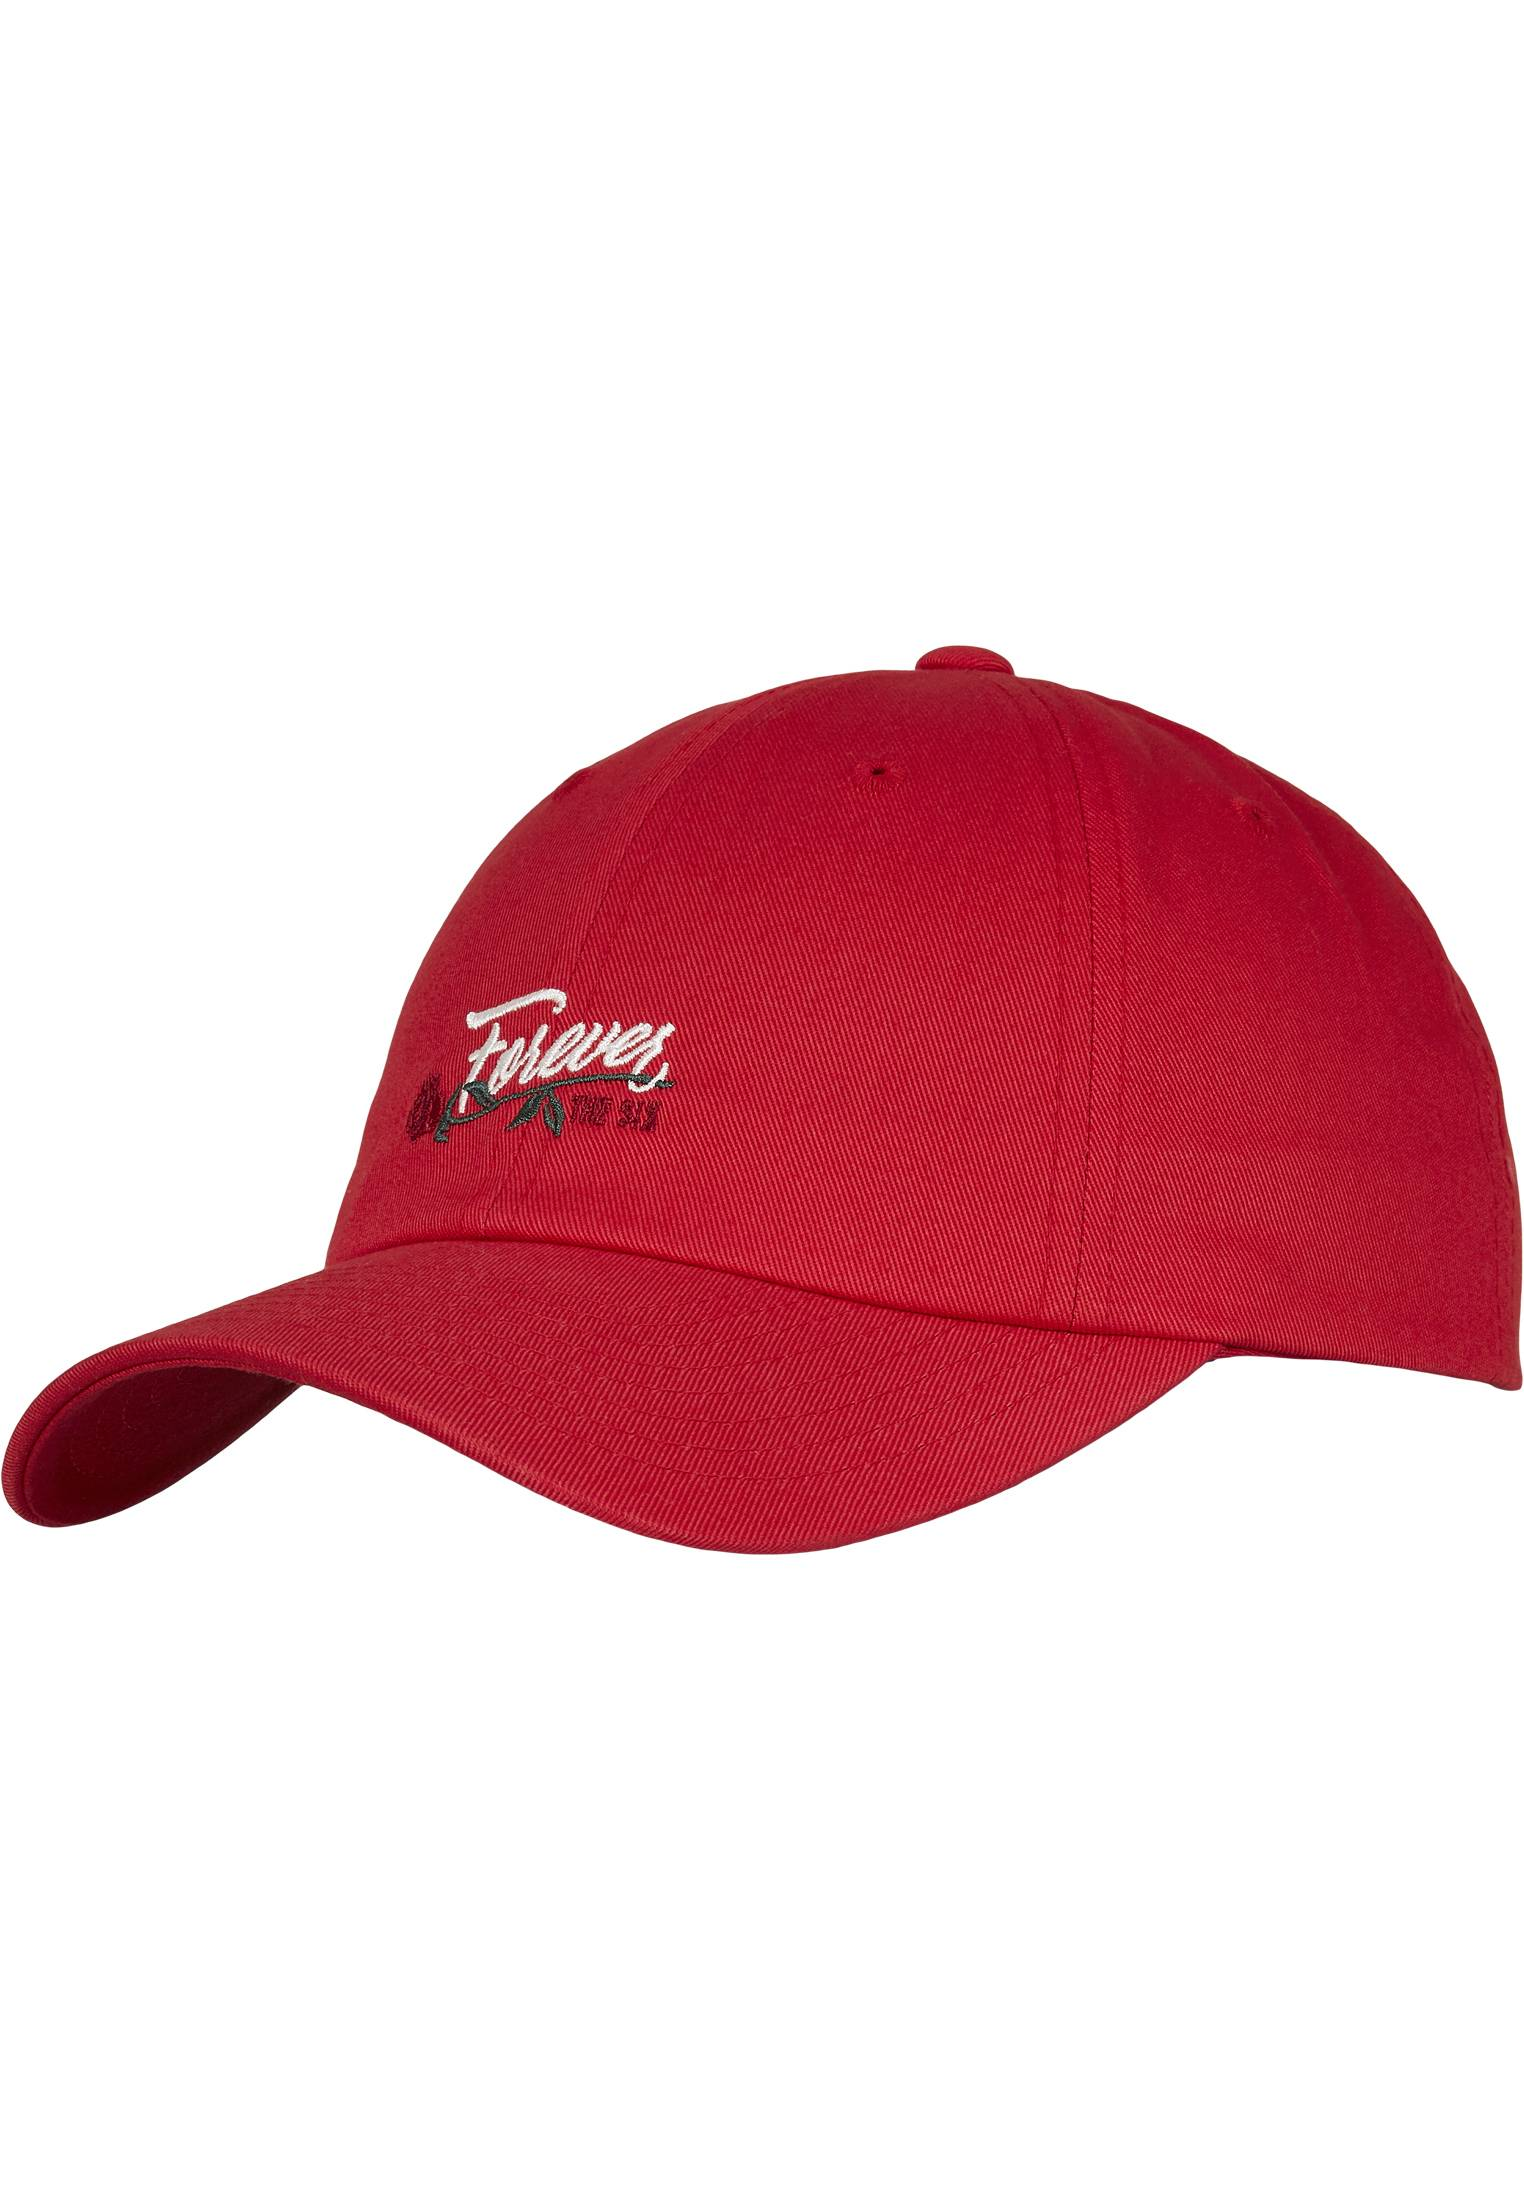 Urban Classics C&S WL Six Forever Curved Cap red/mc - One Size